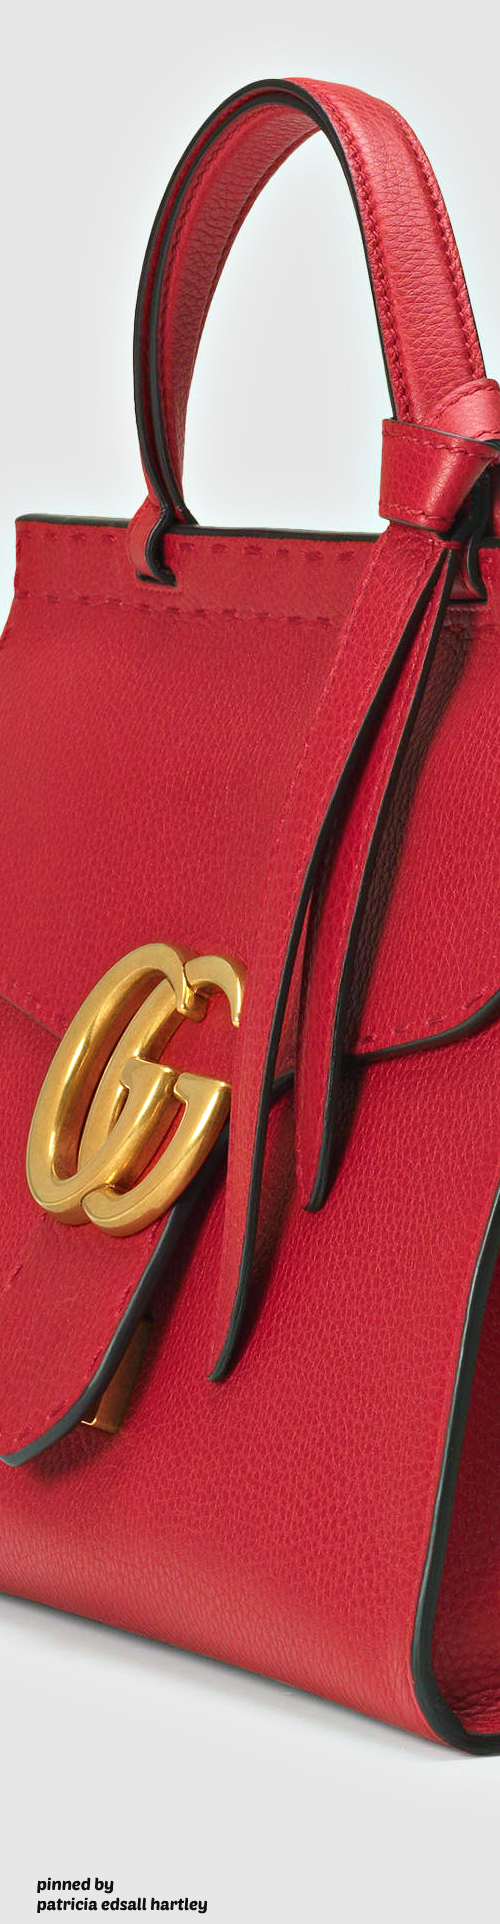 GG Marmont leather top handle bag♡♡♡♡♡